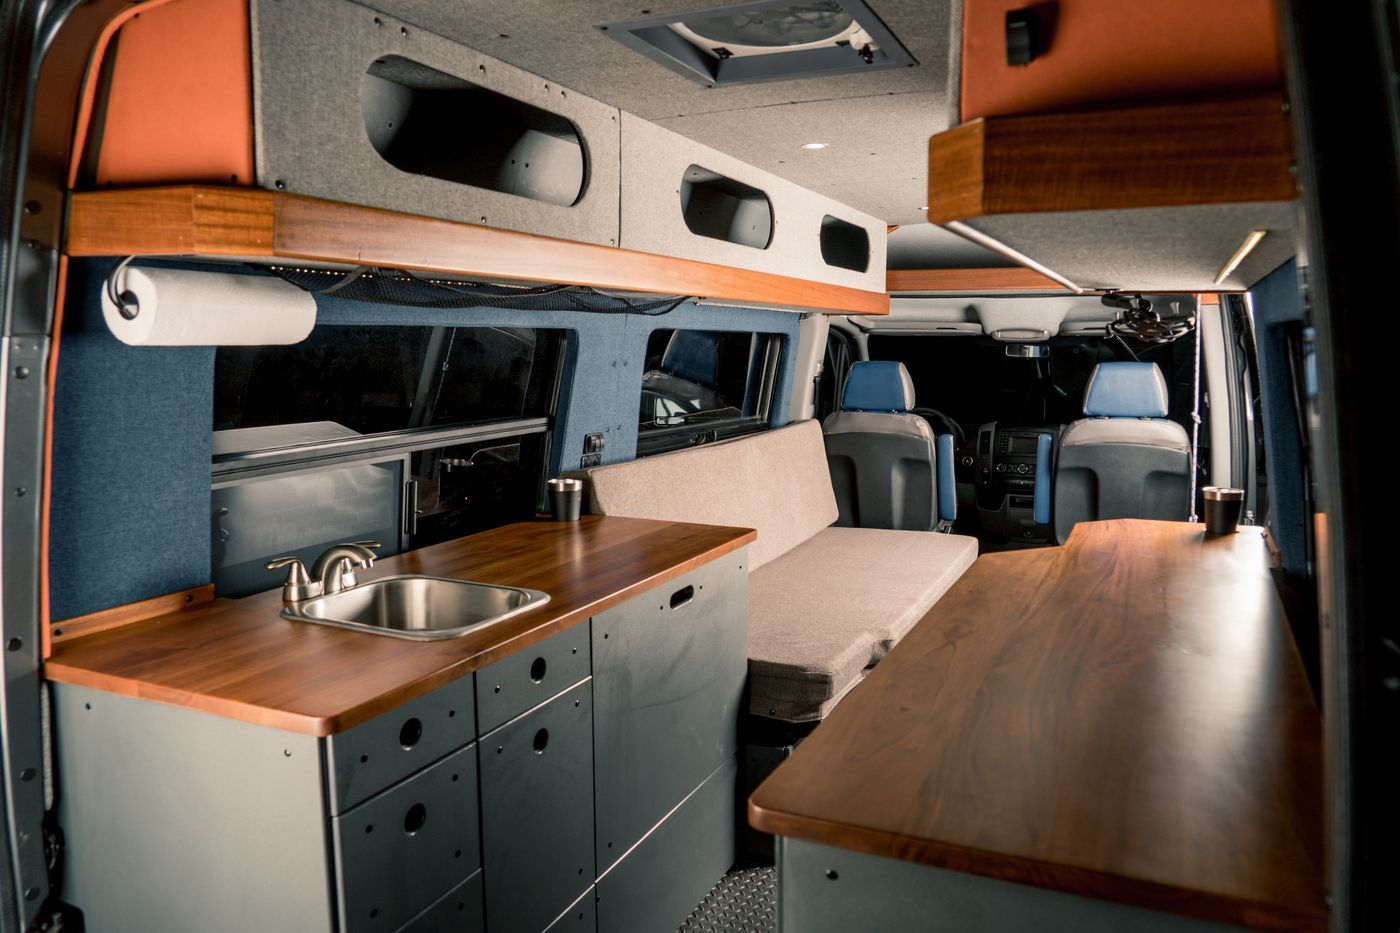 339524771d3f 7 van conversion companies that can build your dream camper - Curbed